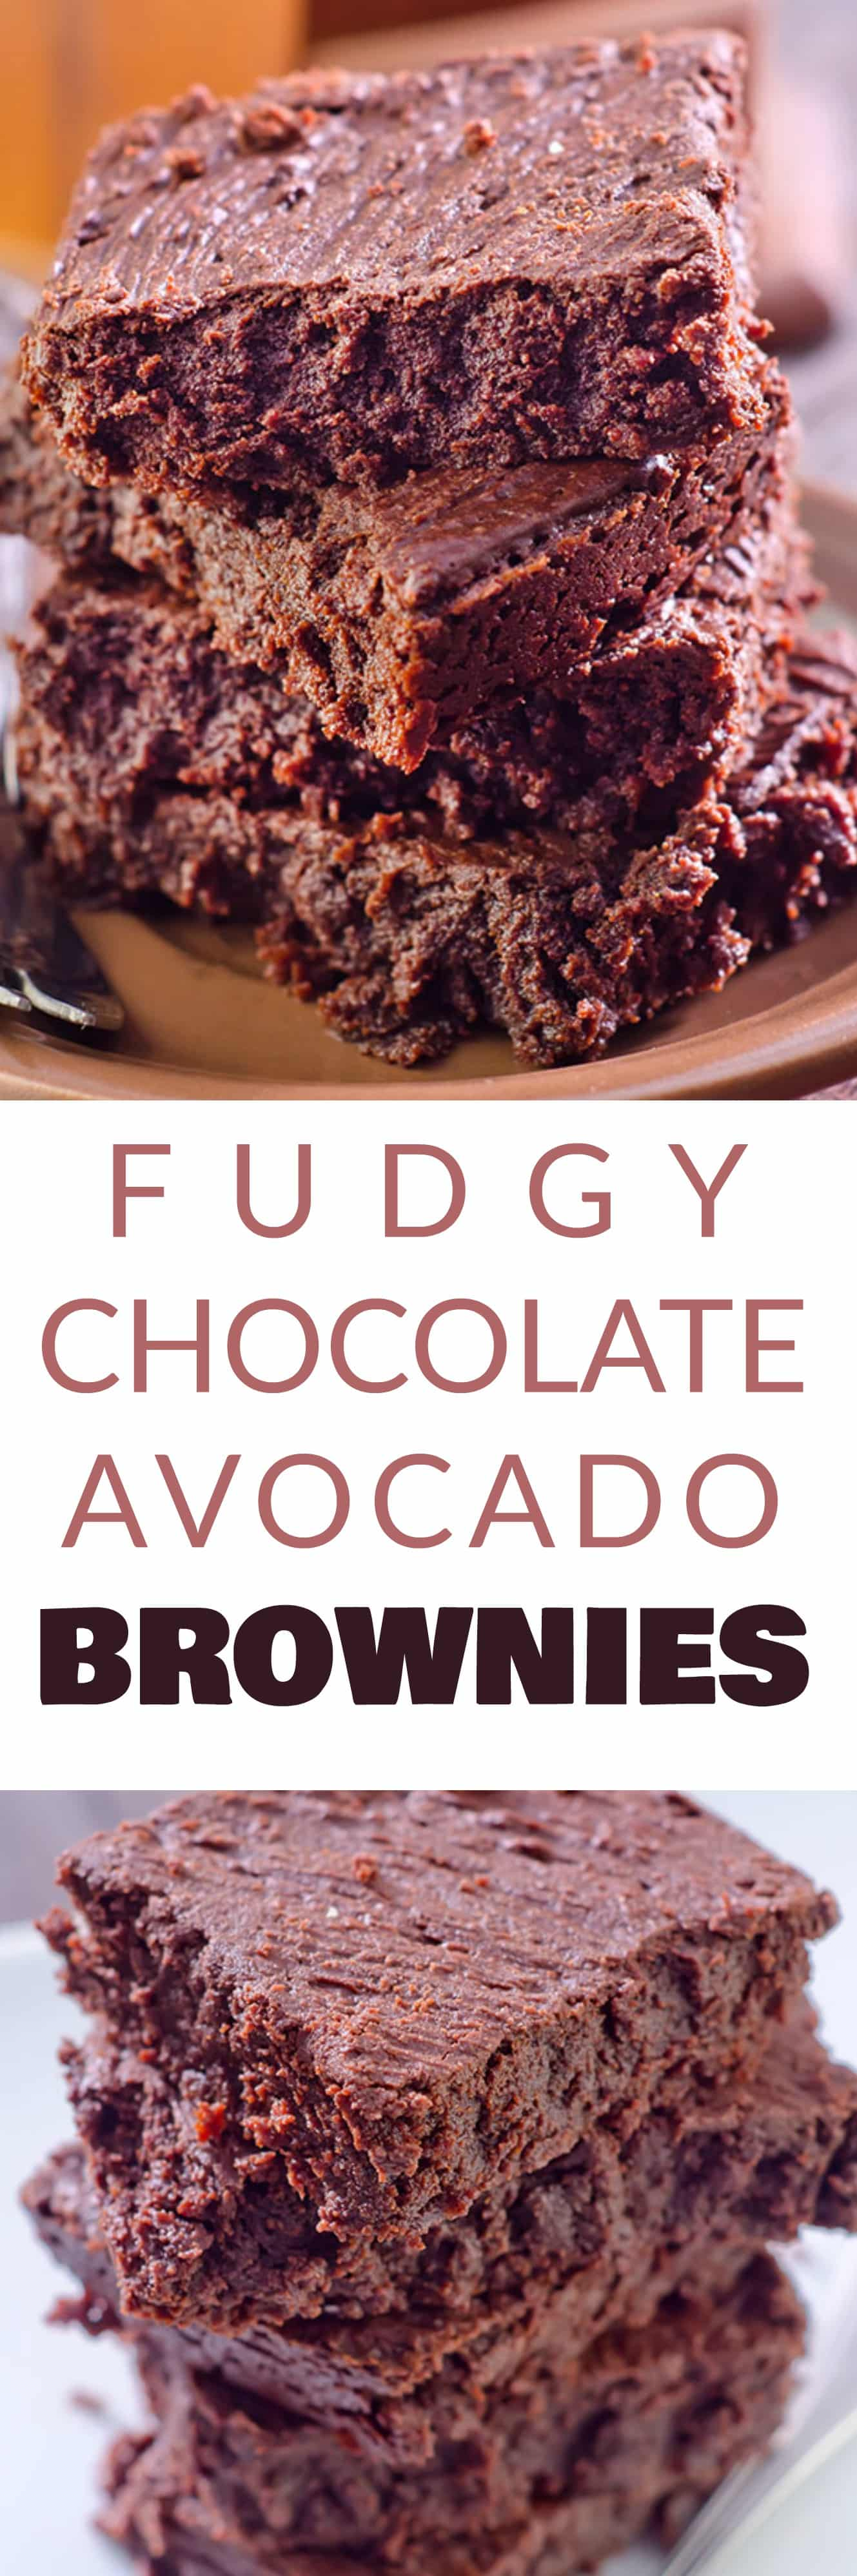 FUDGY CHOCOLATE AVOCADO BROWNIES that are made with APPLESAUCE instead of butter! These healthy version brownies are easy to make in a 8x8 pan and can easily be turned vegan! They are flourless and delicious - my entire family (even the kids!) love them!